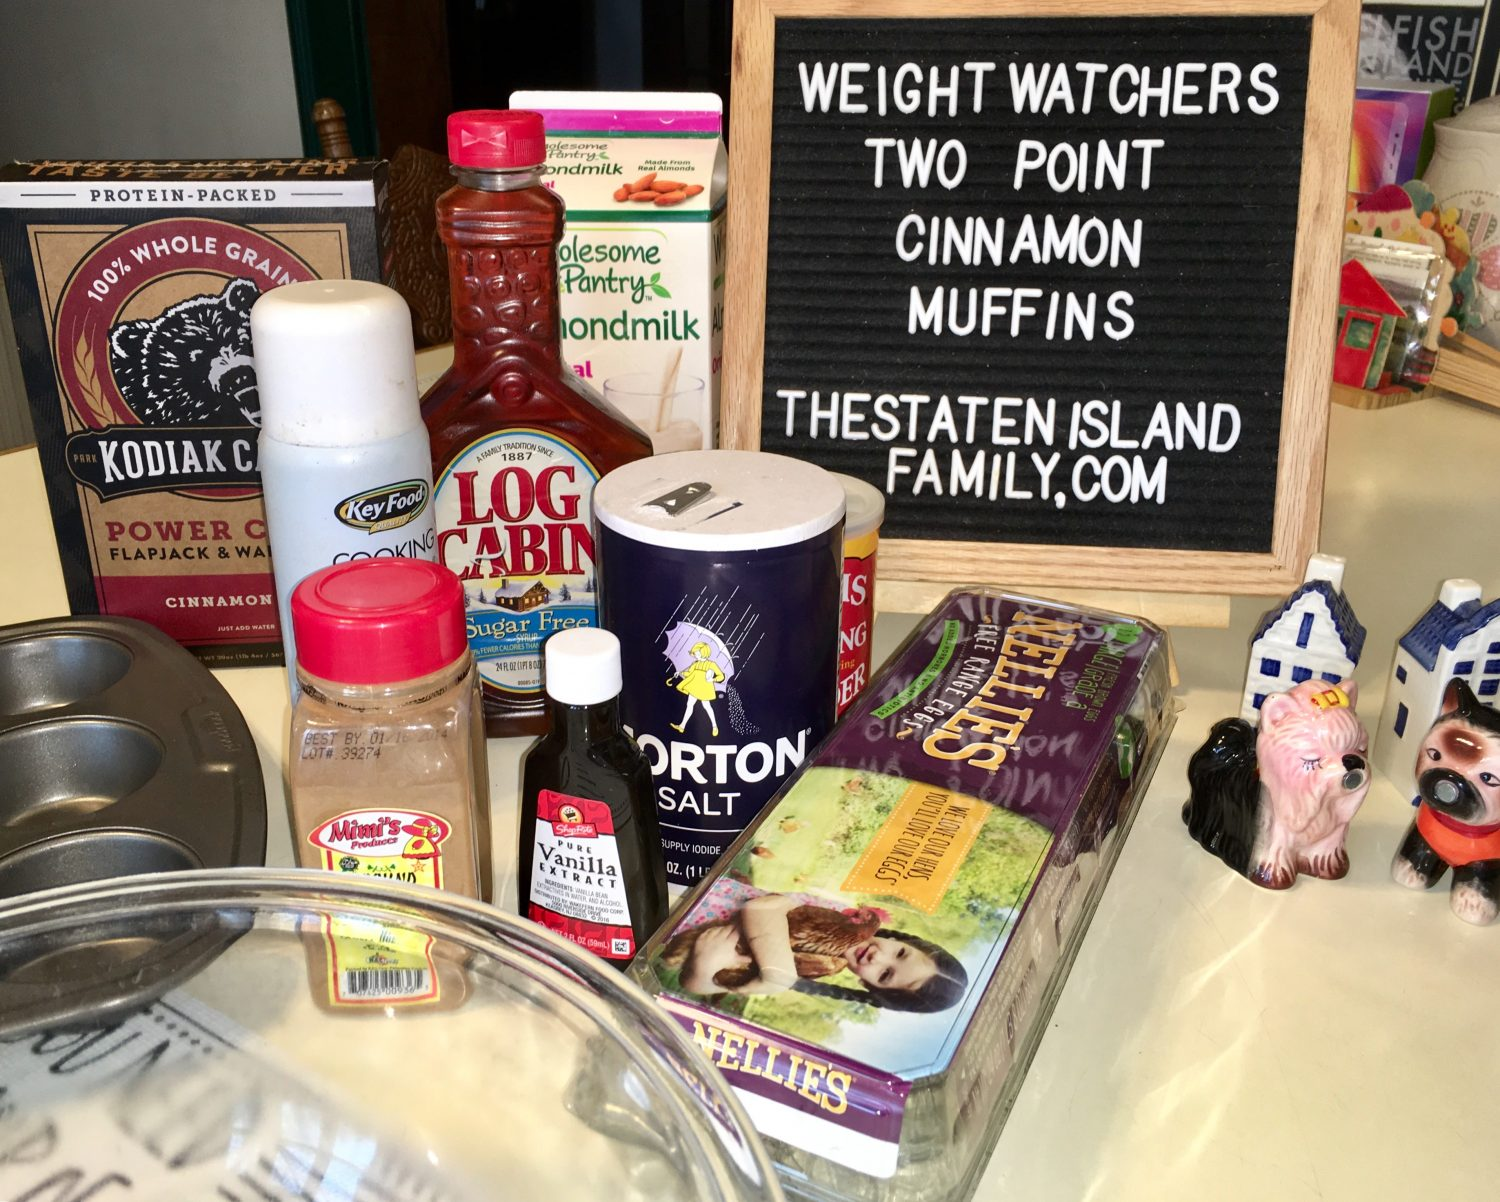 Ingredients for weight watchers muffins